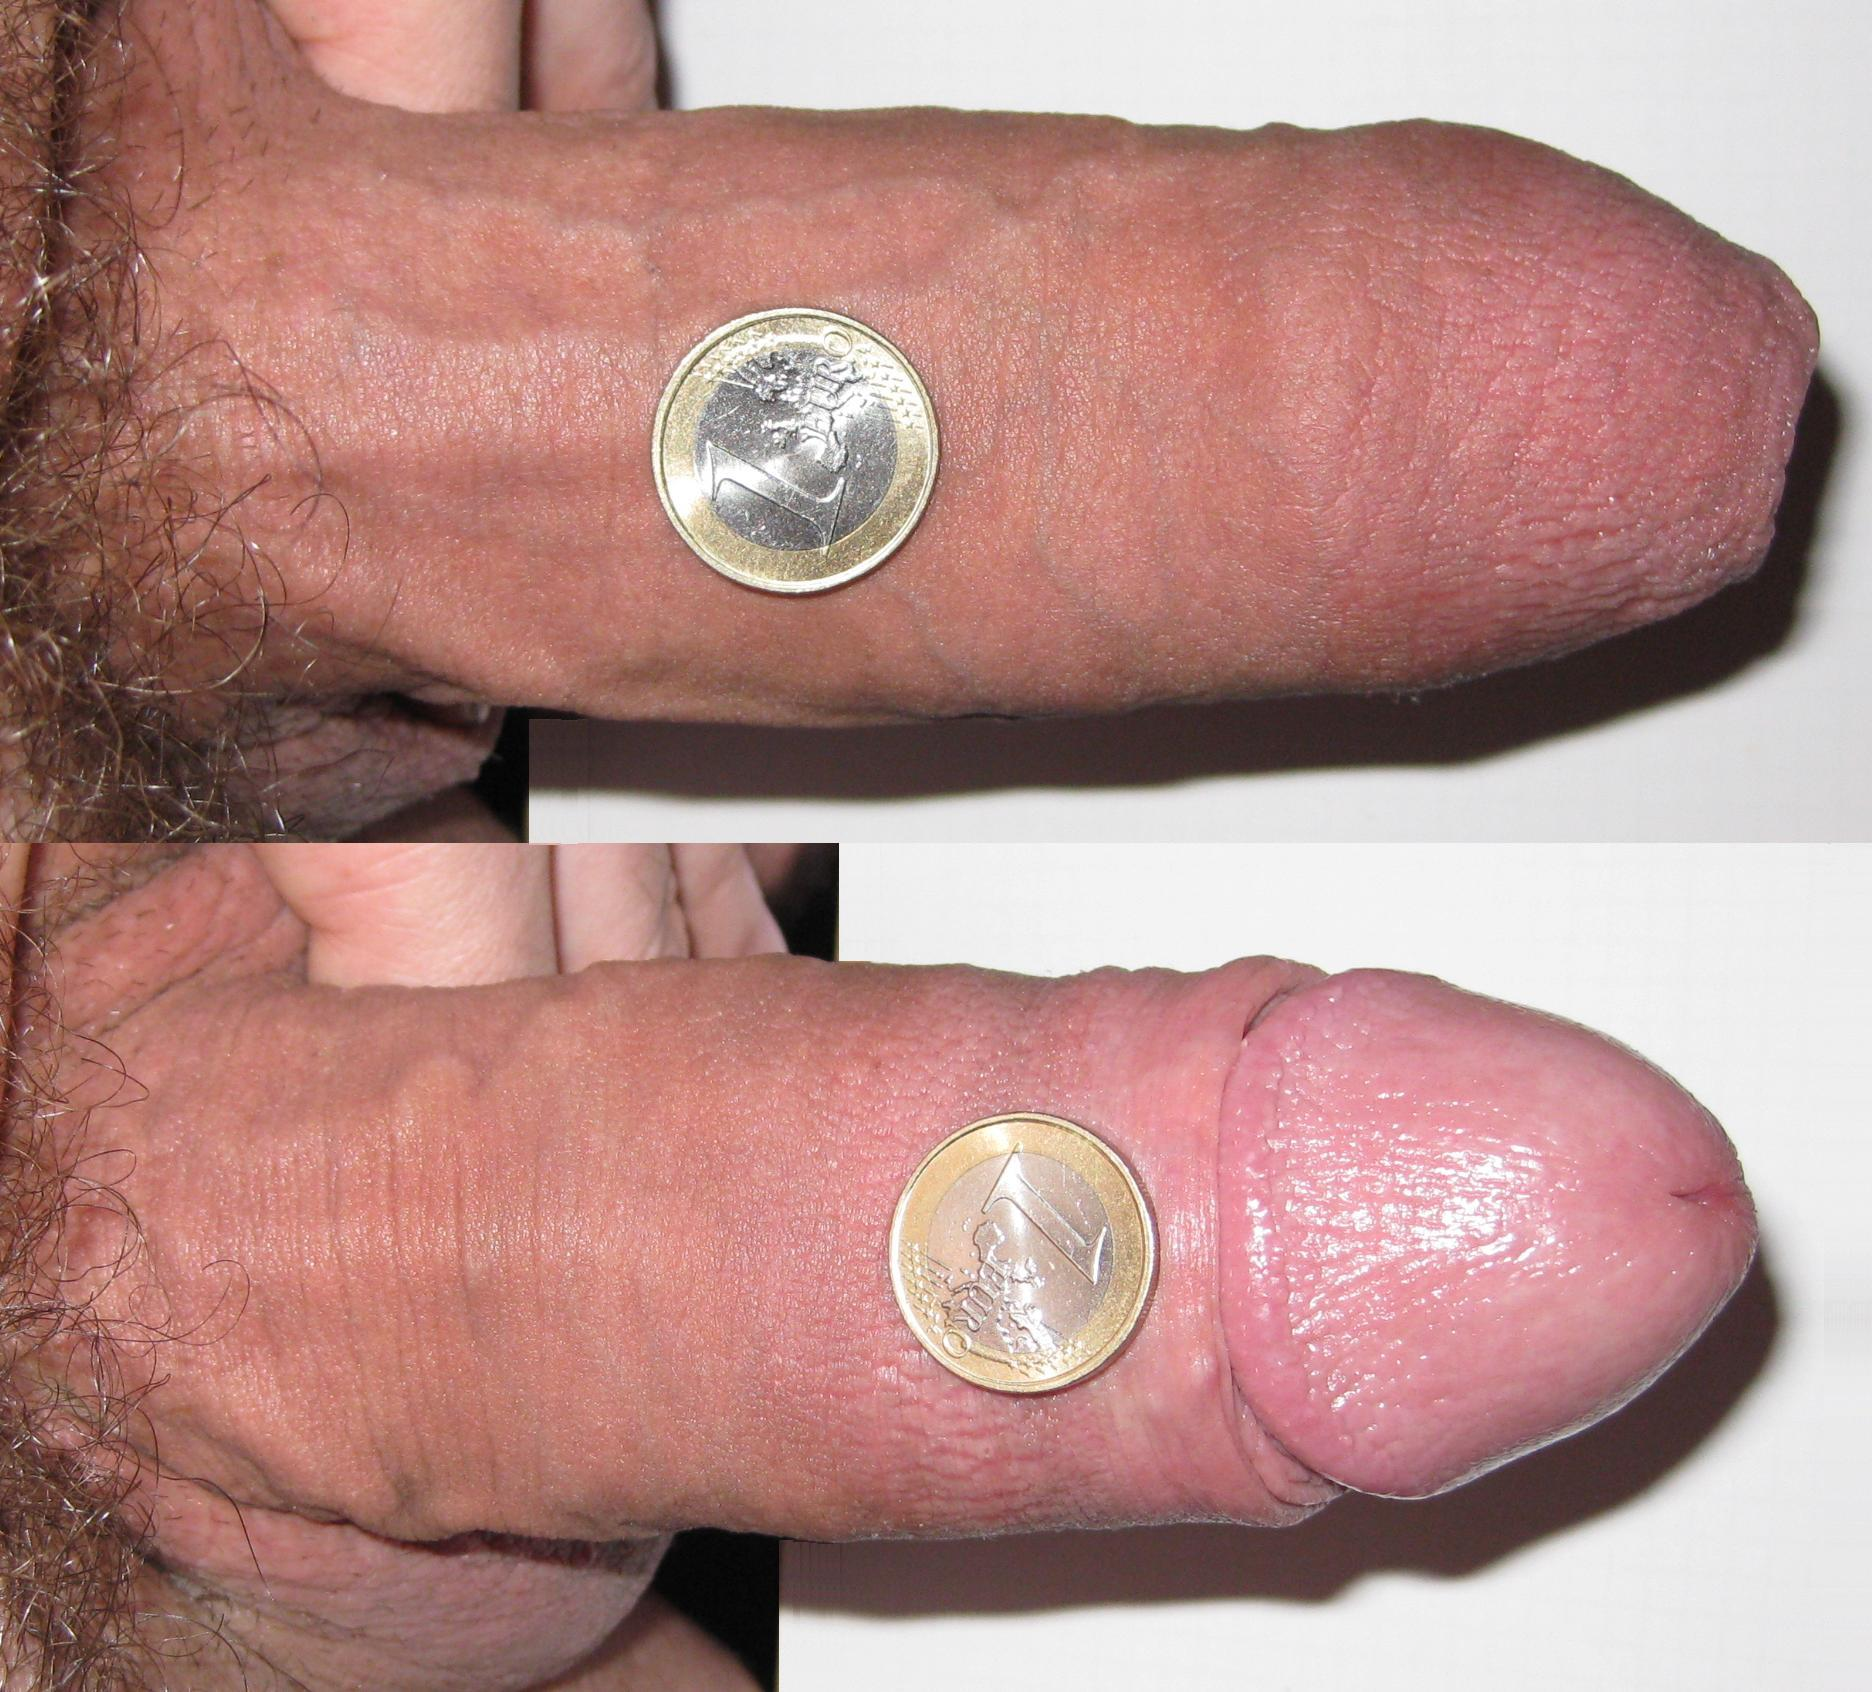 Enlargement penis girth